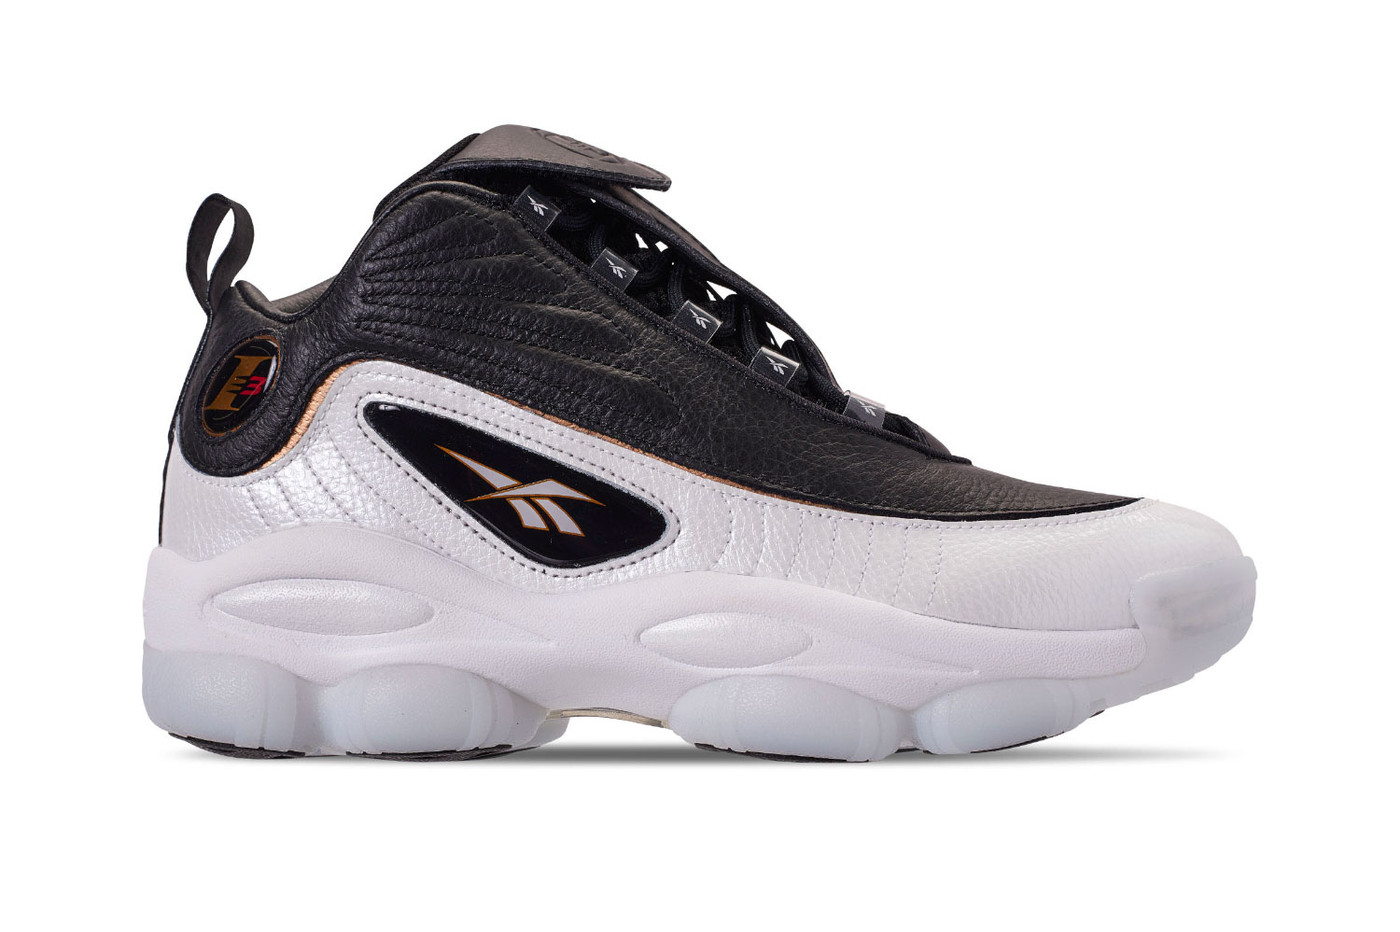 994b2dcad NBA legend Allen Iverson is back in the sneaker game with a new Reebok  signature model